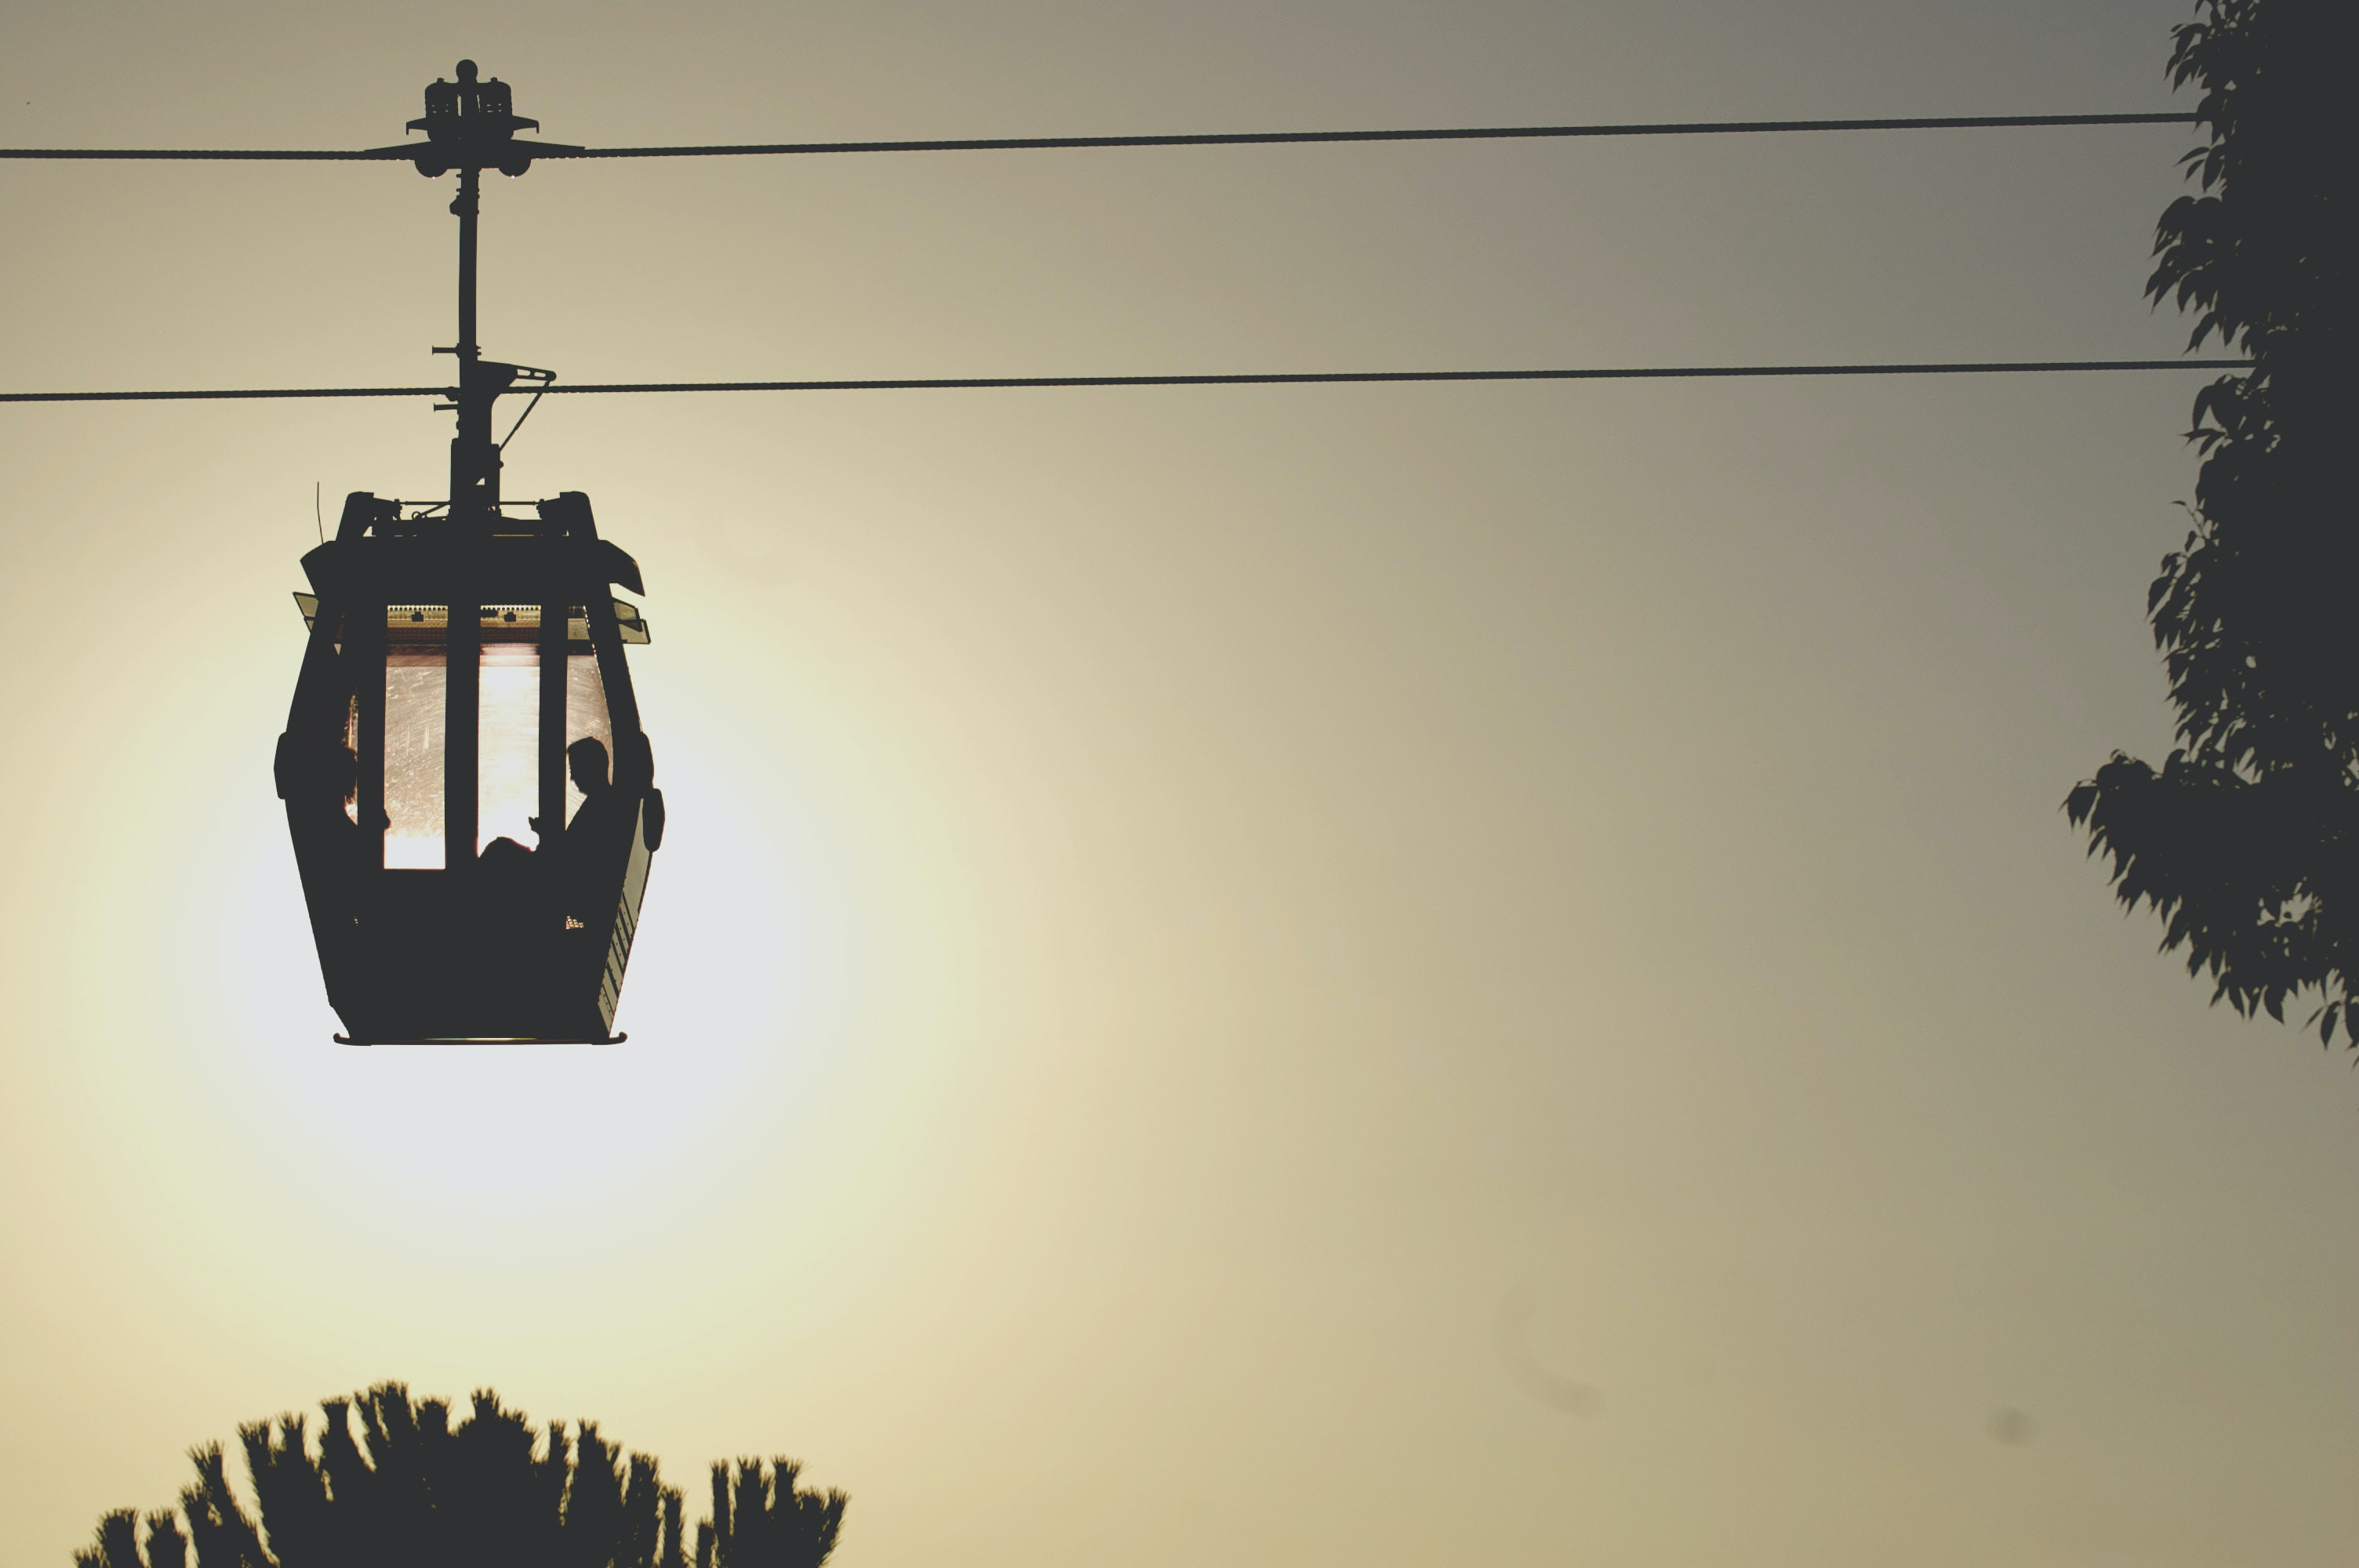 Side view of a cable car silhouette.